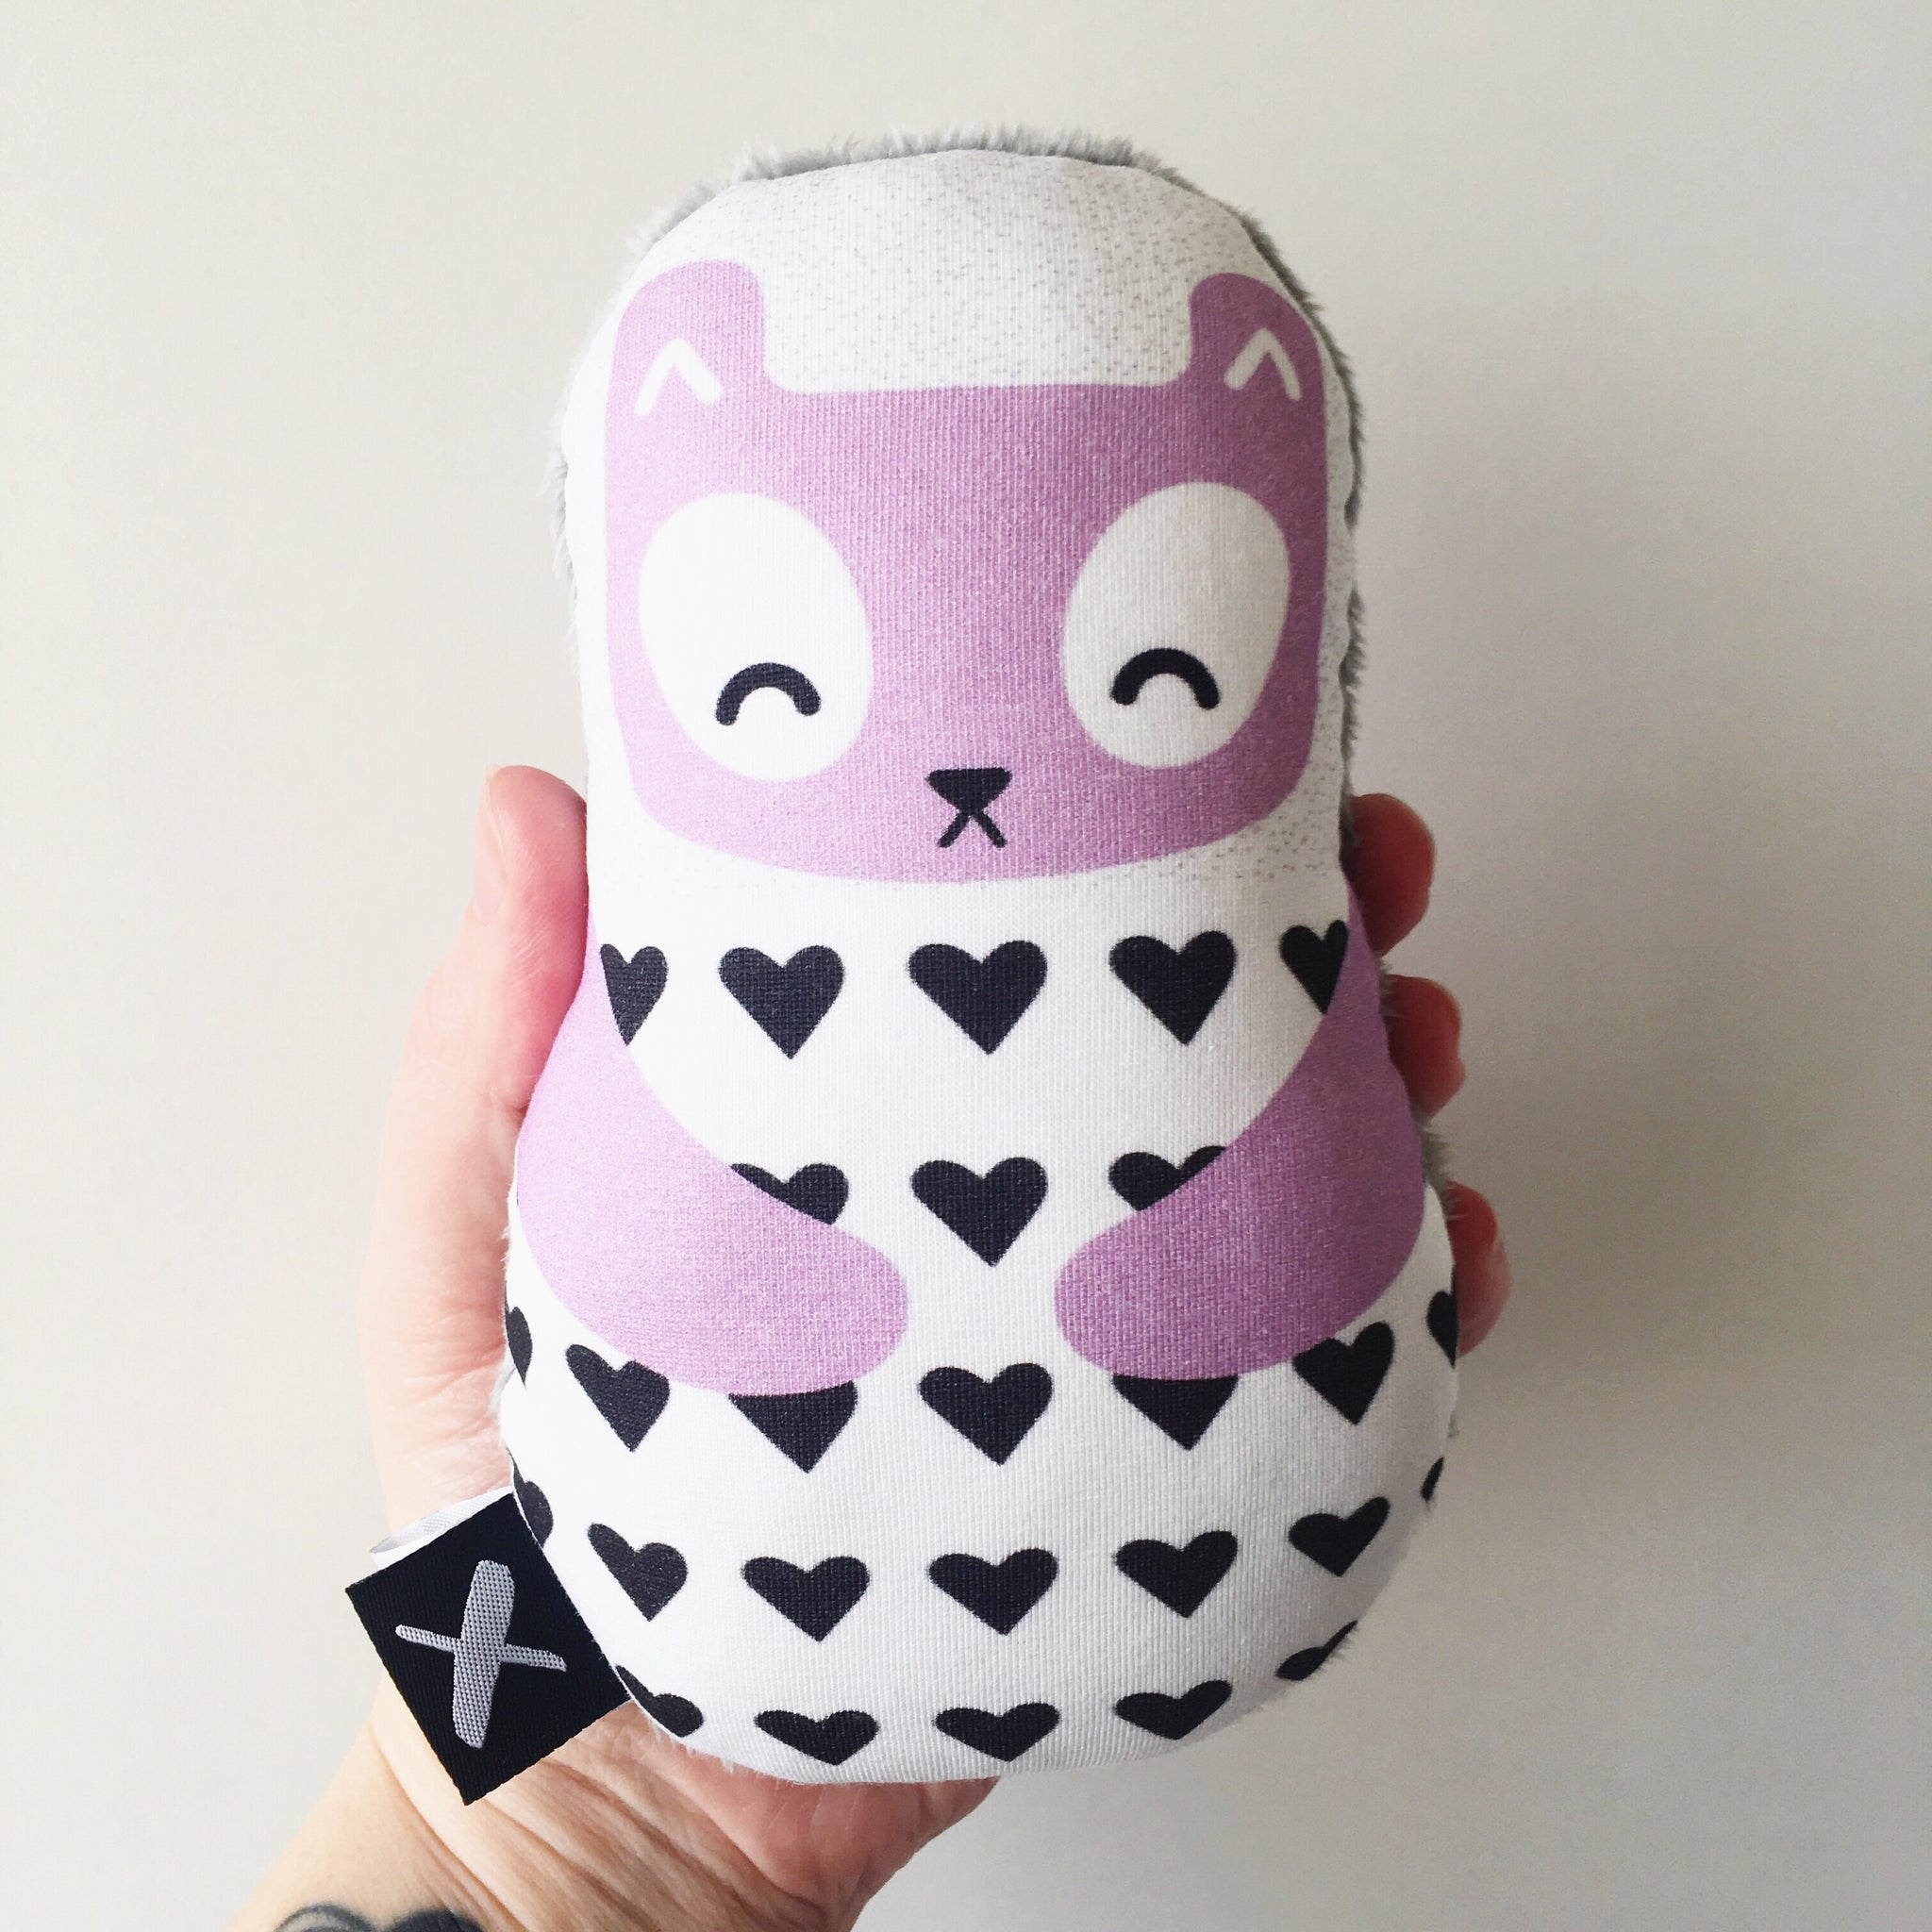 LILAC TED 'Baby Babushka' organic cotton rattle